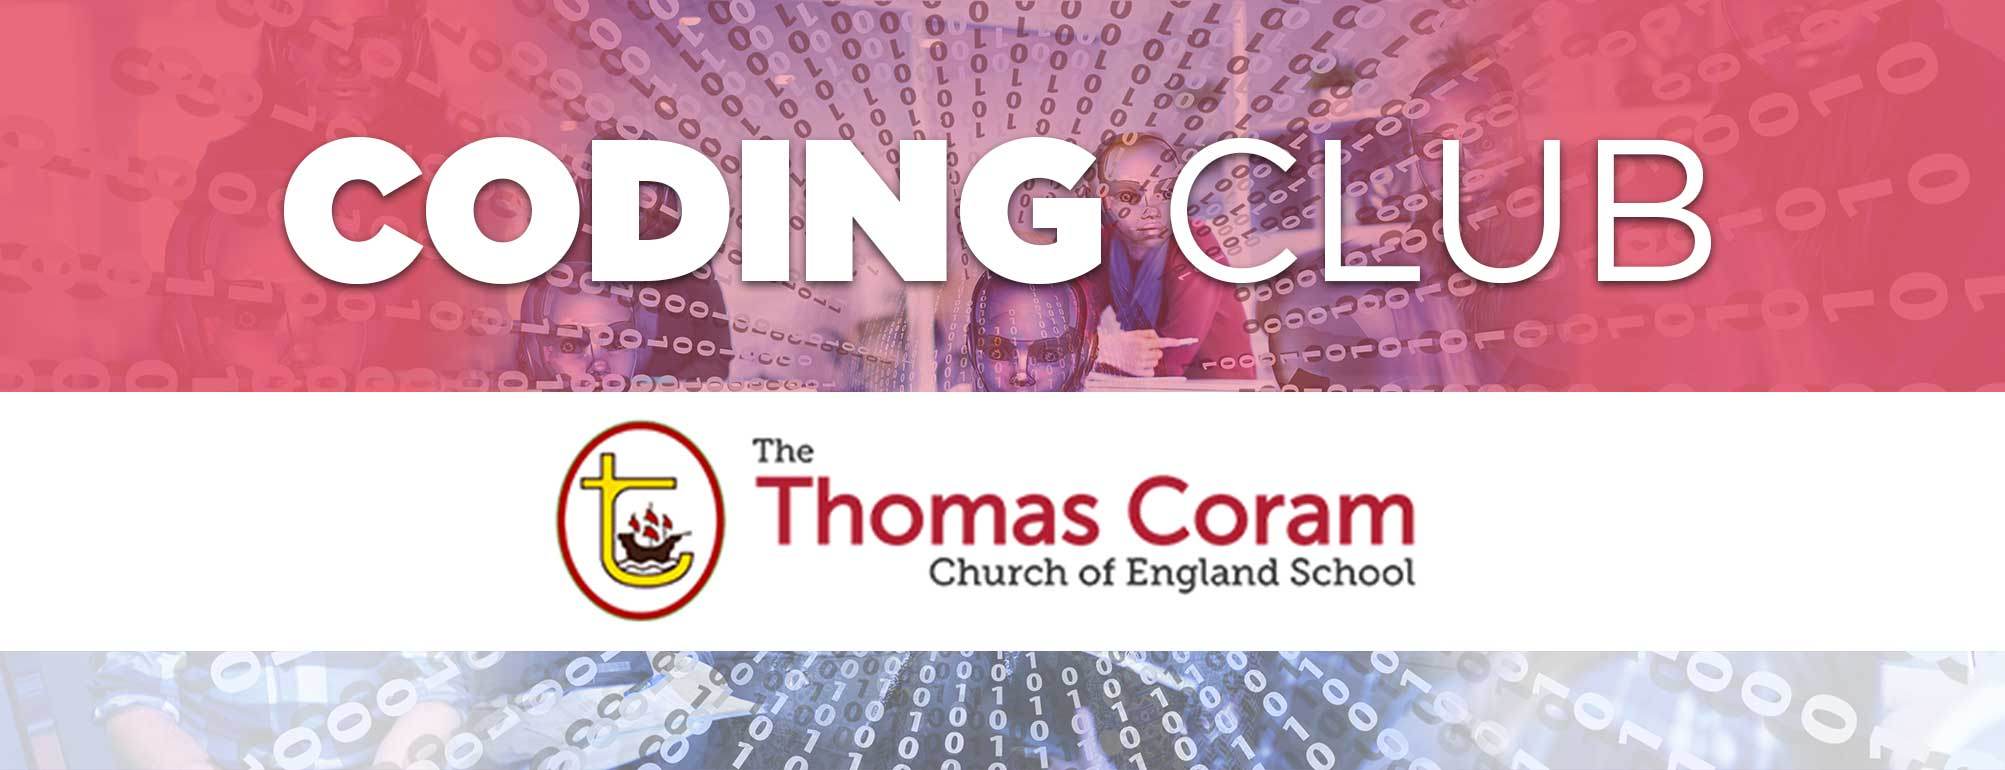 Coding Club - Thomas Coram - April to July 2018